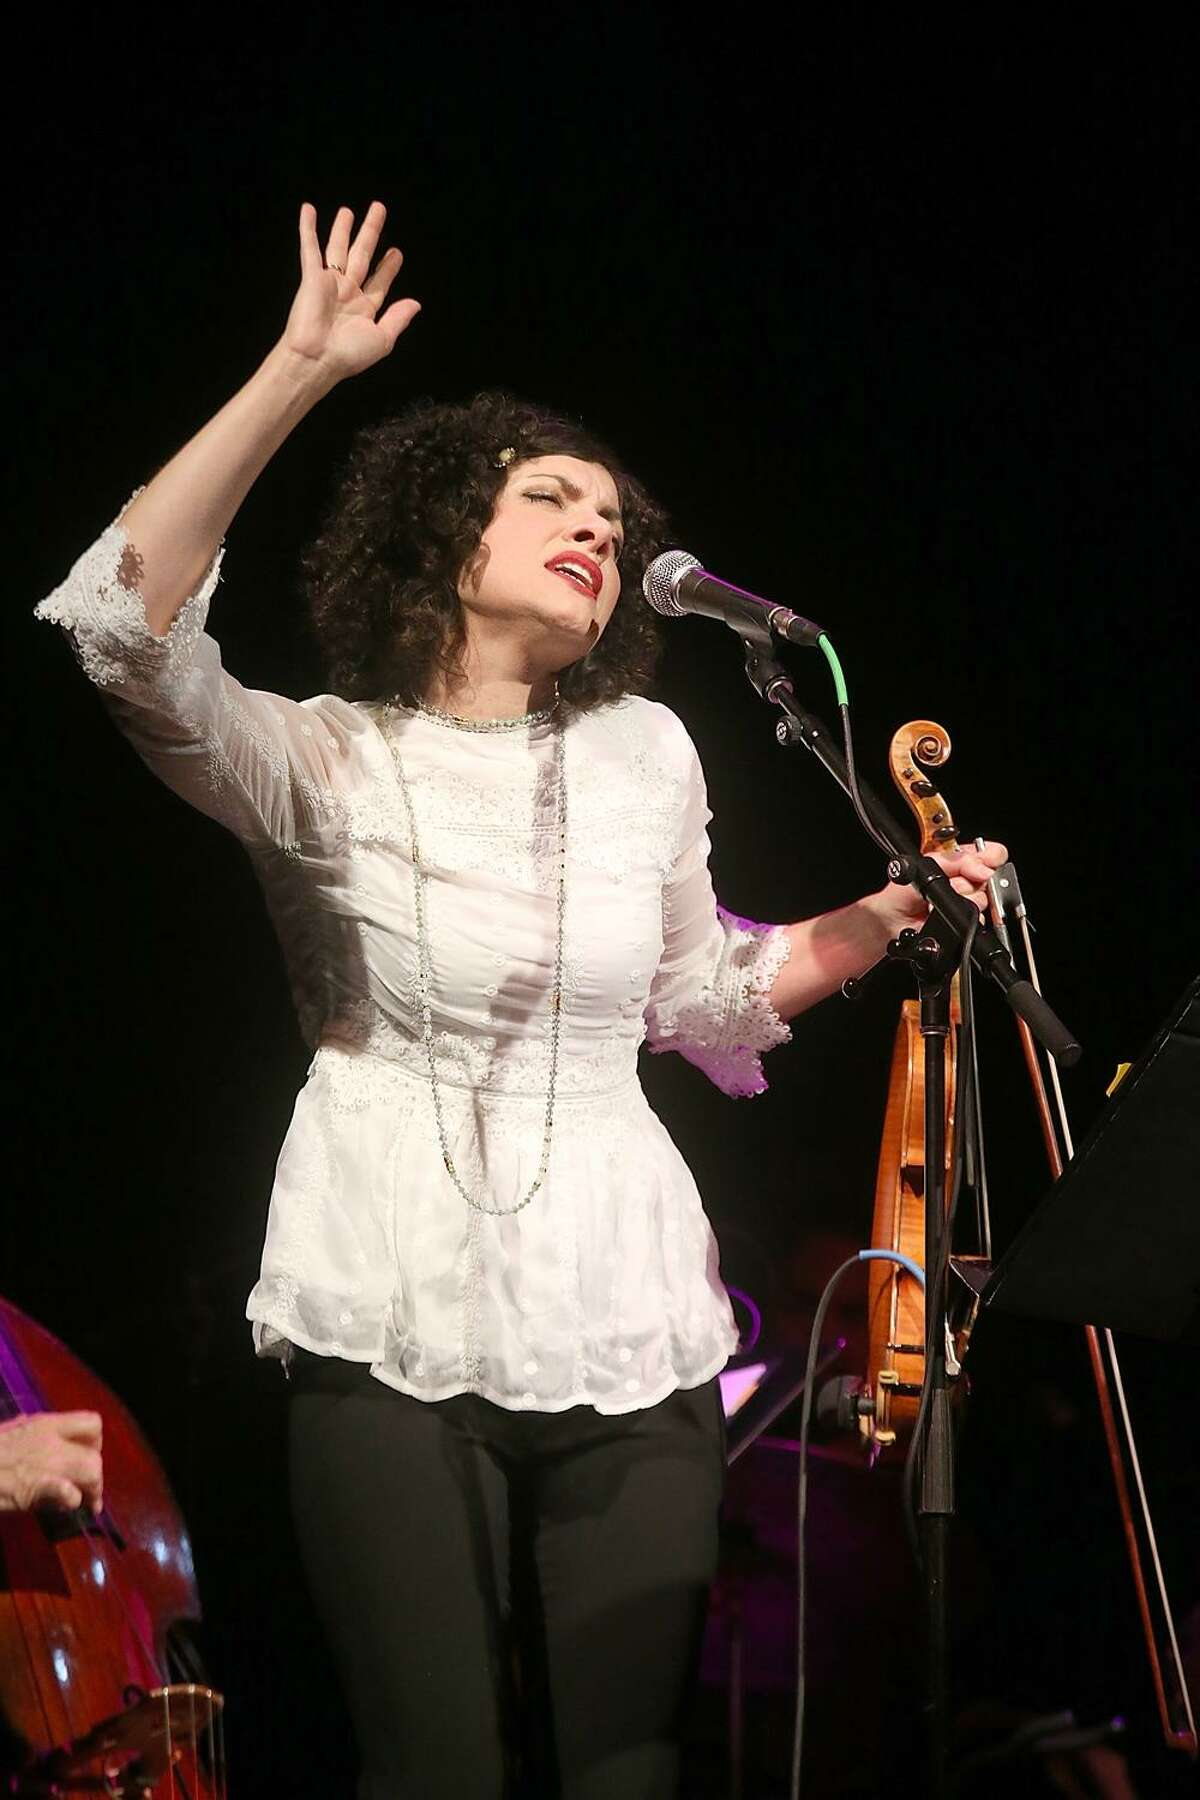 """On Friday, March 7, at Houston's Cullen Theater, """"Texas Monthly"""" LIVE will use music, video, narration and live performances to share stories of the Lone Star State. Here, Carrie Rodriguez, who will lead this year's house band, performs at the first LIVE event last year in Austin."""